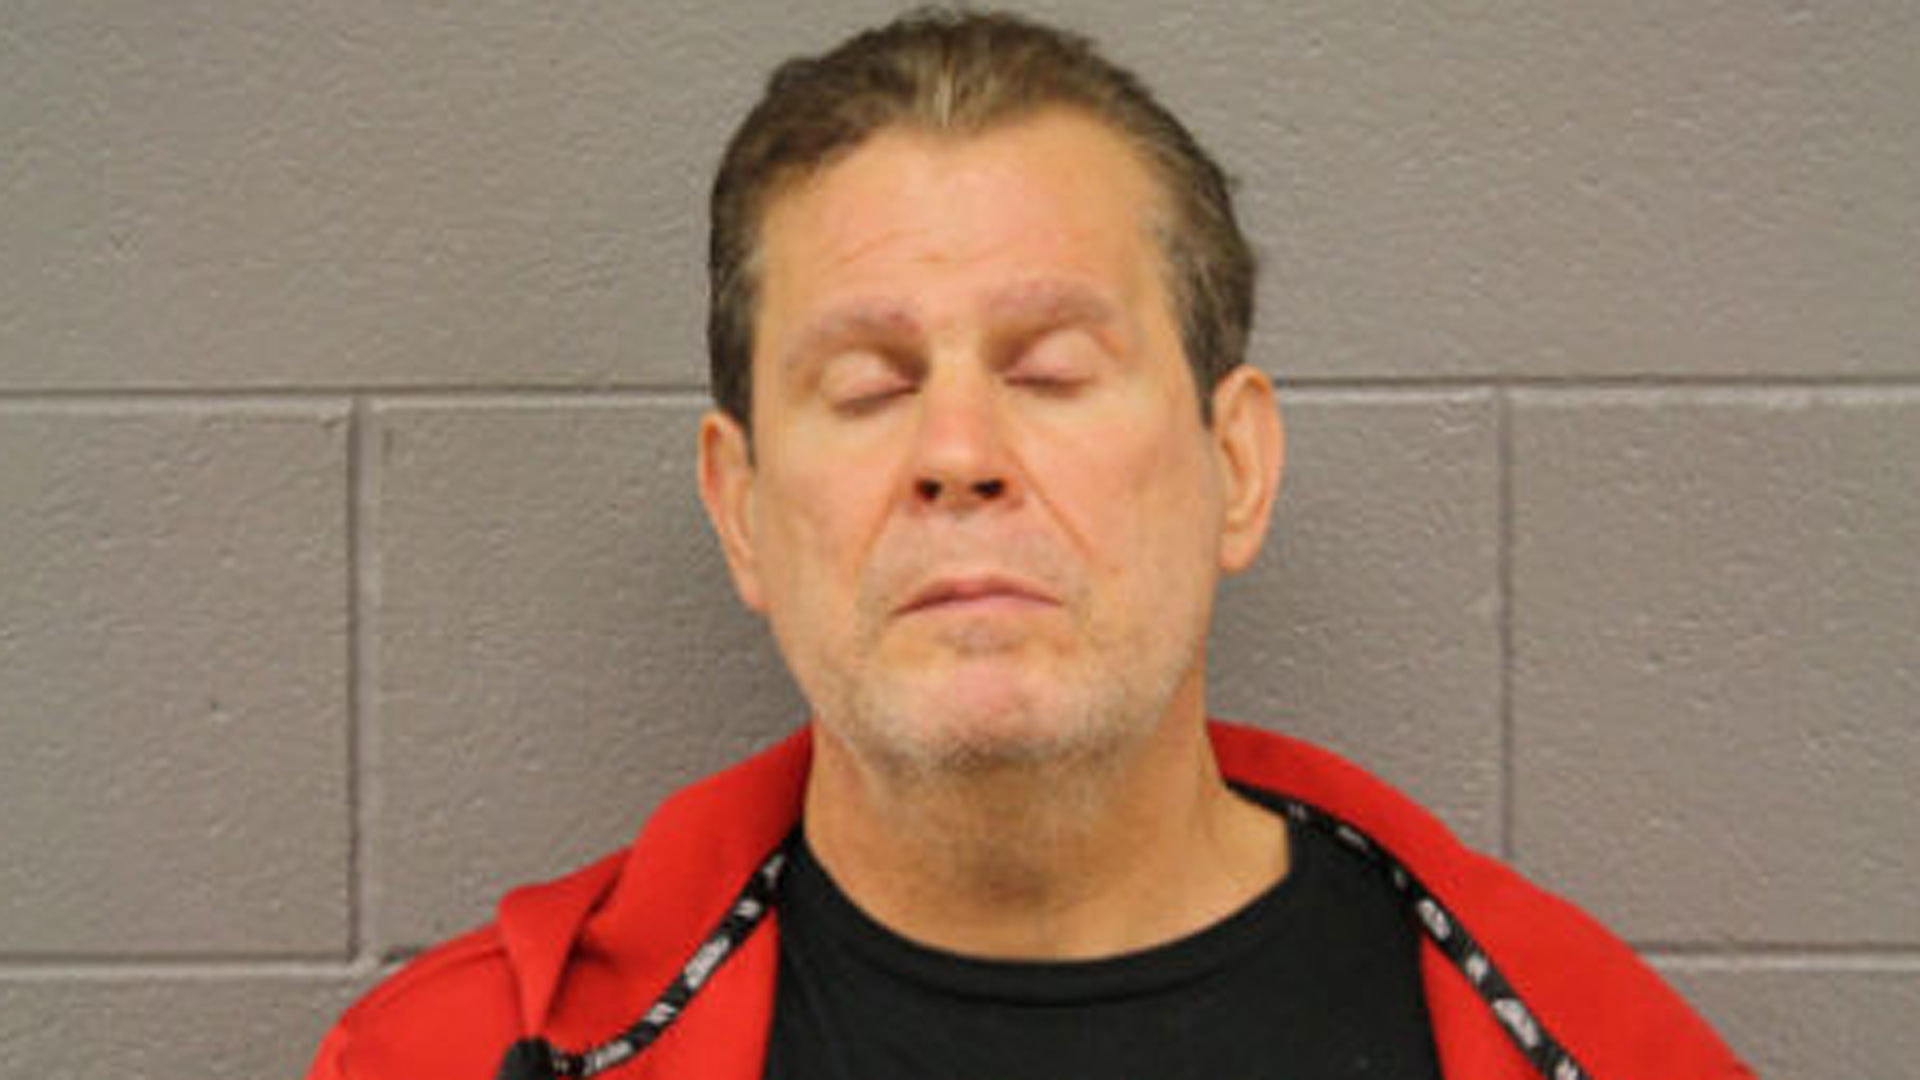 news local breaking chicago offender counseling story